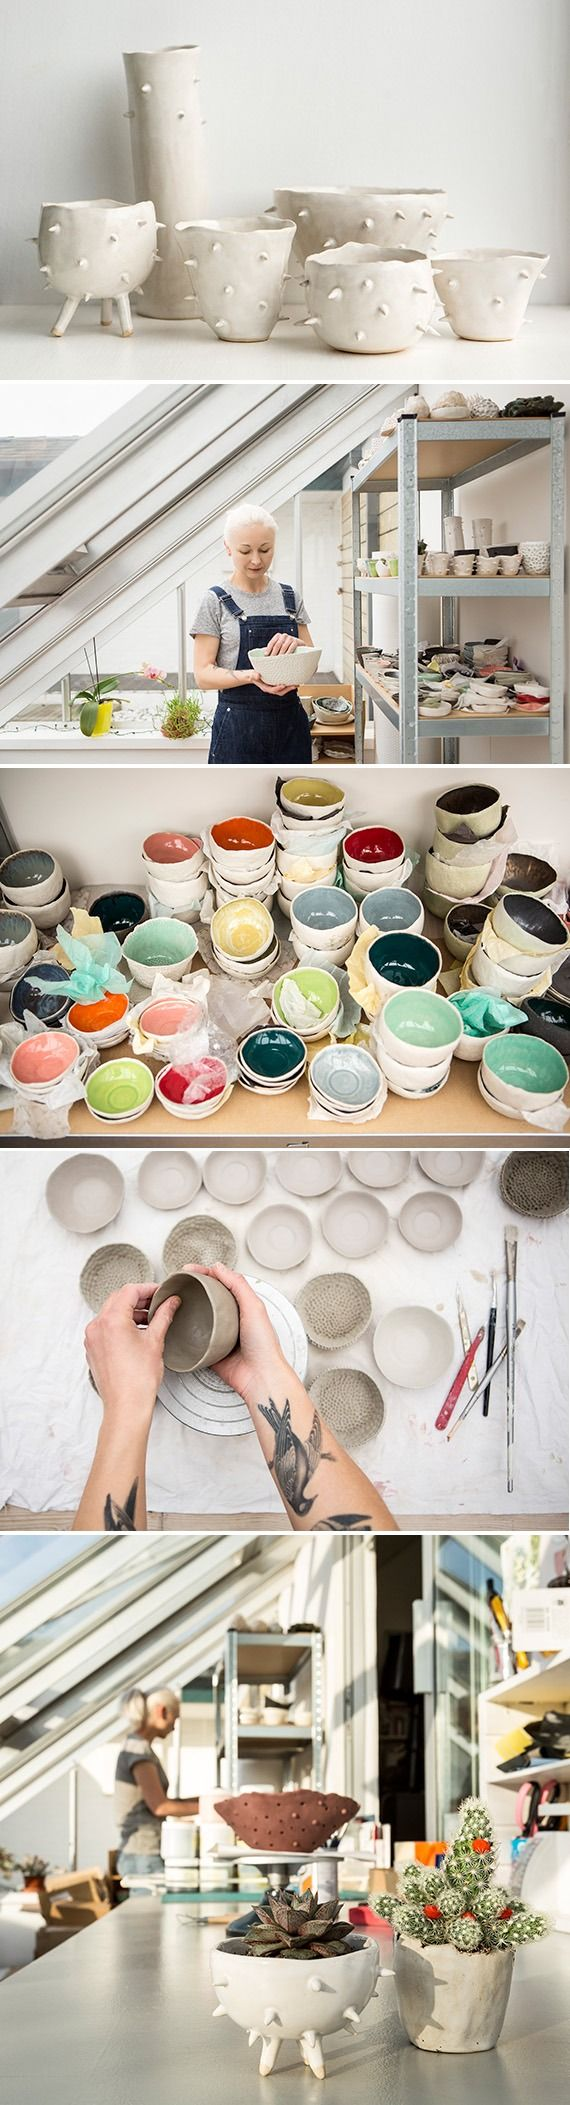 """""""Absolutely go for what you love and believe in. I think if you love what you are doing it's going to show, and people are more likely to be willing to buy it."""" Self-taught ceramicist and jewelry designer Carol Morley found her niche making delightfully irregular treasures by hand in her London live-work flat."""